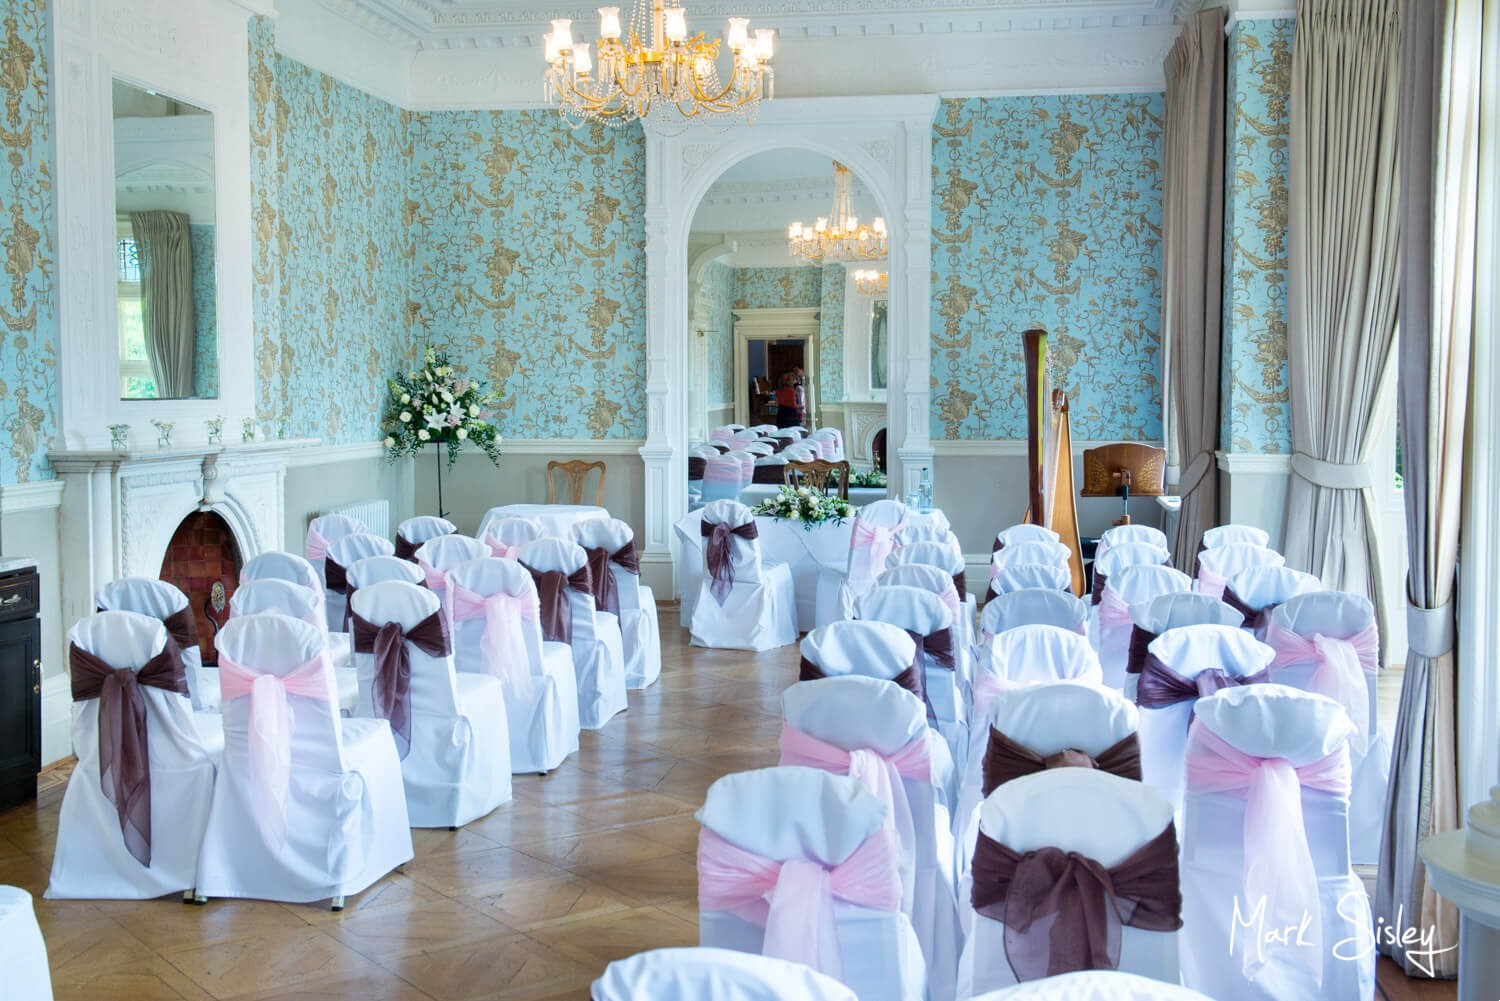 Wedding photography of the ceremony room at Pendley Manor Hotel in Hertfordshire